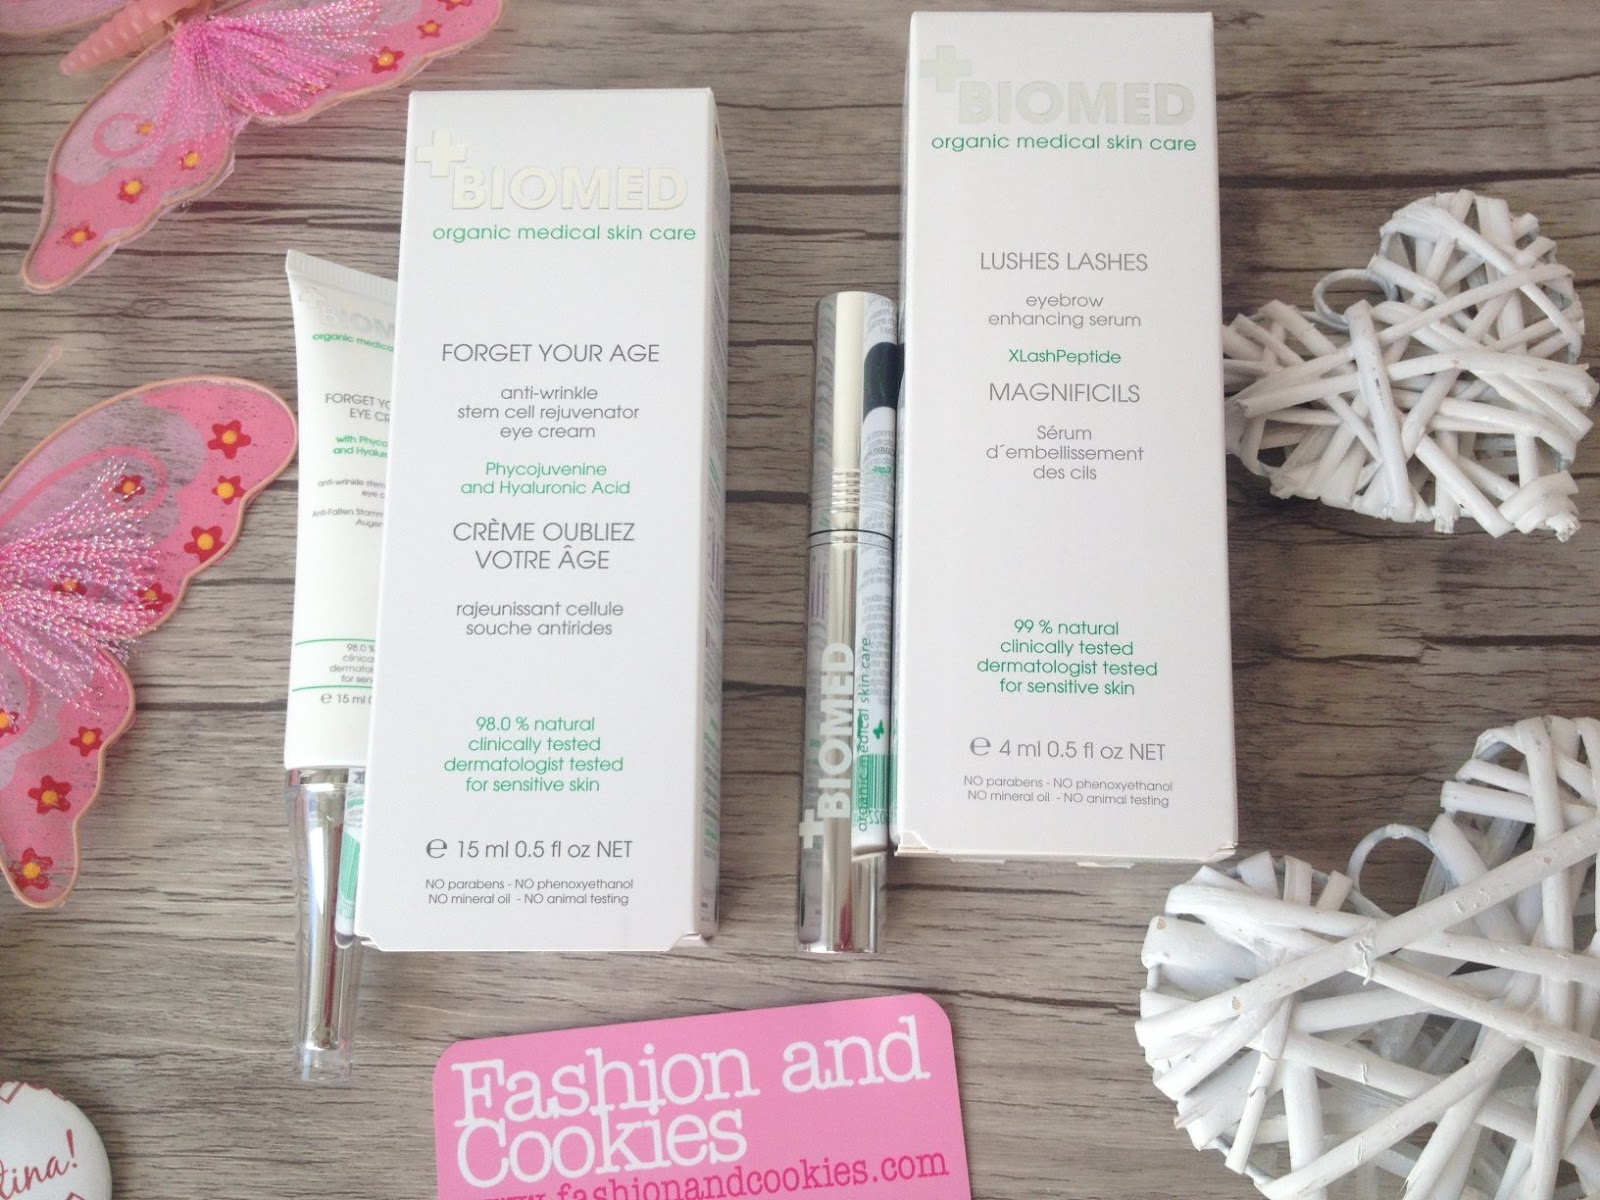 Biomed Organic Skincare review, Biomed Forget your age cream and serum, lushes lashes presentation and review on Fashion and Cookies fashion blog